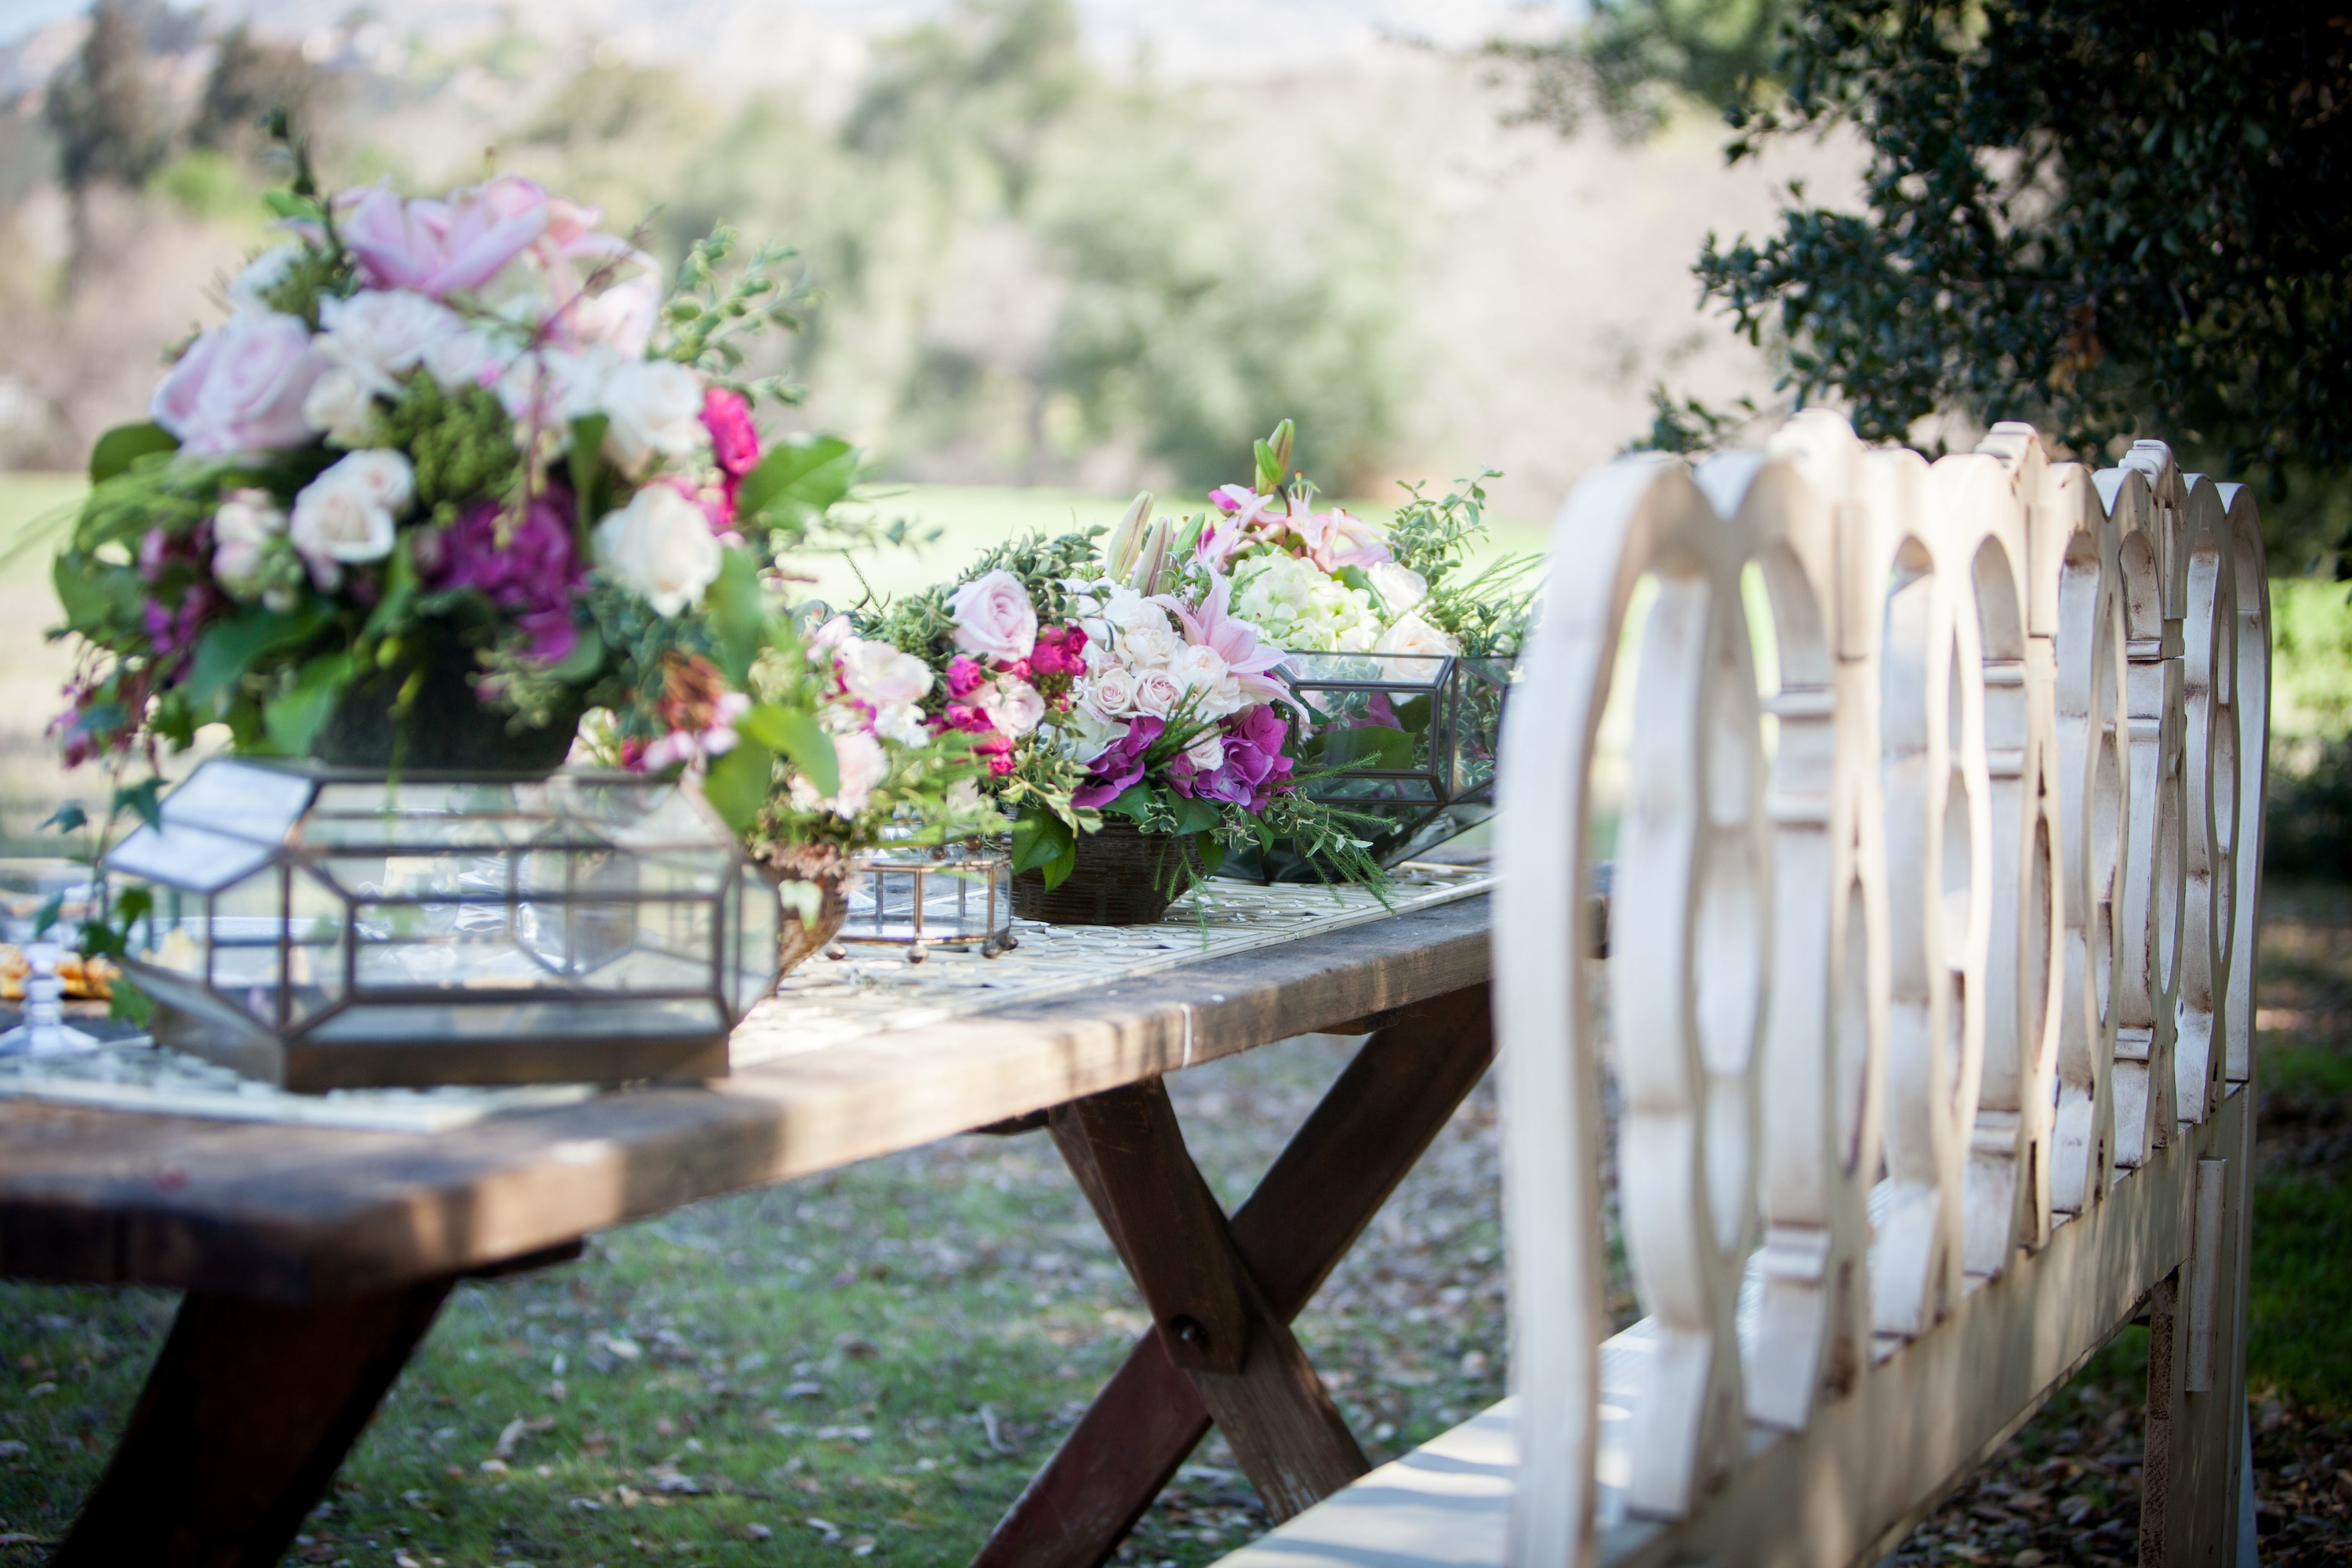 Giardino Country Chic Romantic Outdoor Wedding Reception Table Vintage Chairs